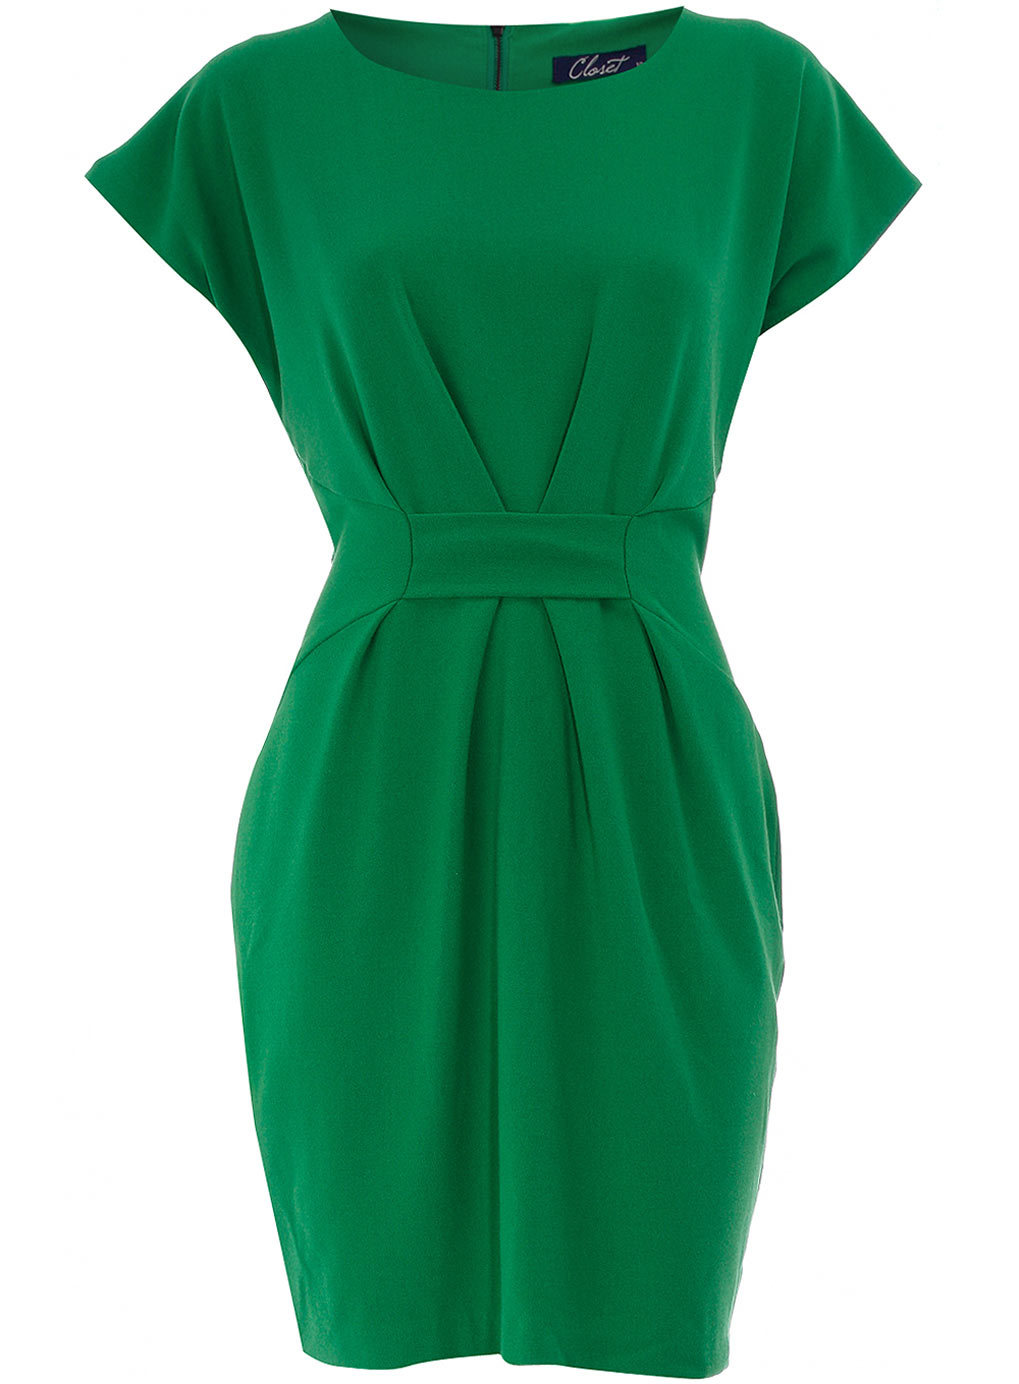 Dorothy Perkins - Green Tab Gathered Dressvia us.dorothyperkins.com, $27.00 (was $69.00) Item Code: 60000717